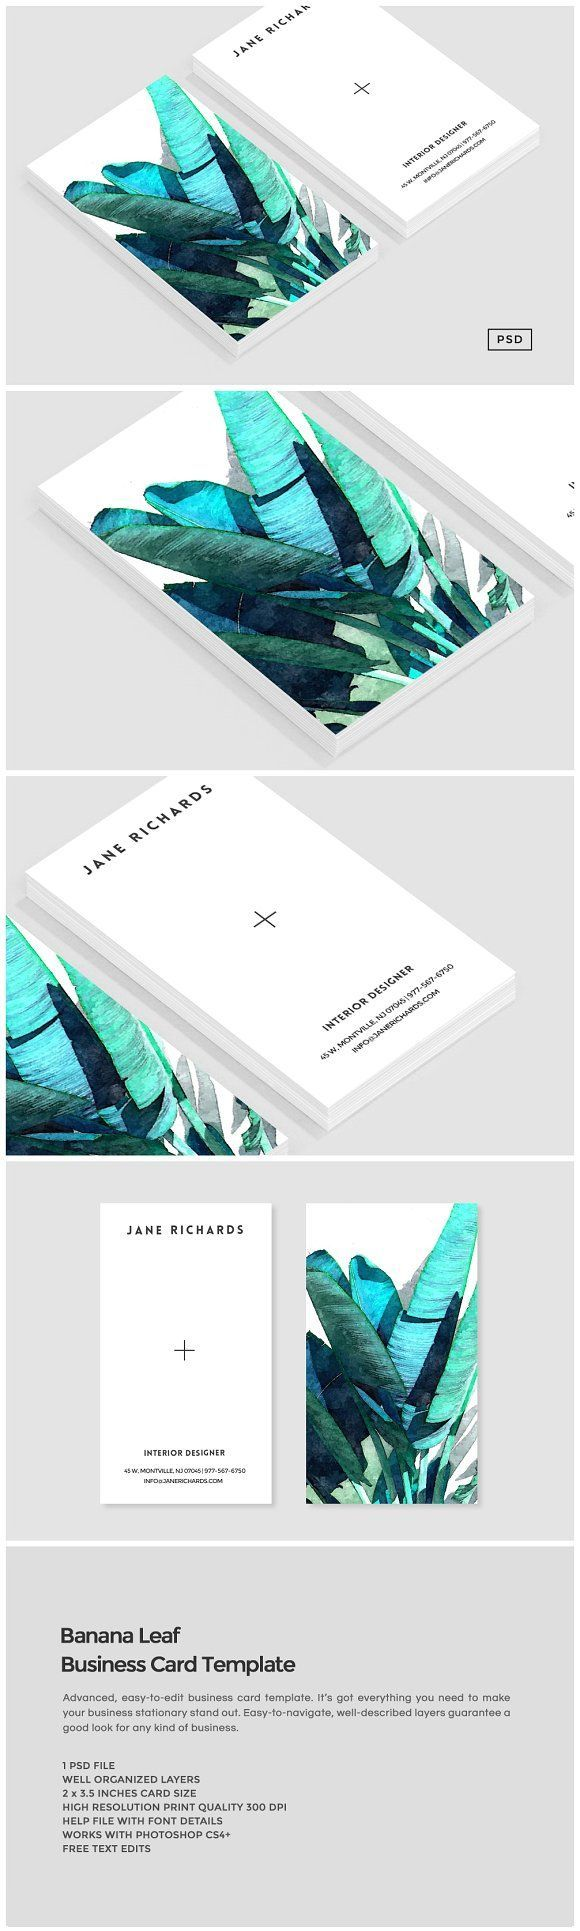 Banana leaf business card template by the design label on banana leaf business card template by the design label on creativemarket flashek Gallery